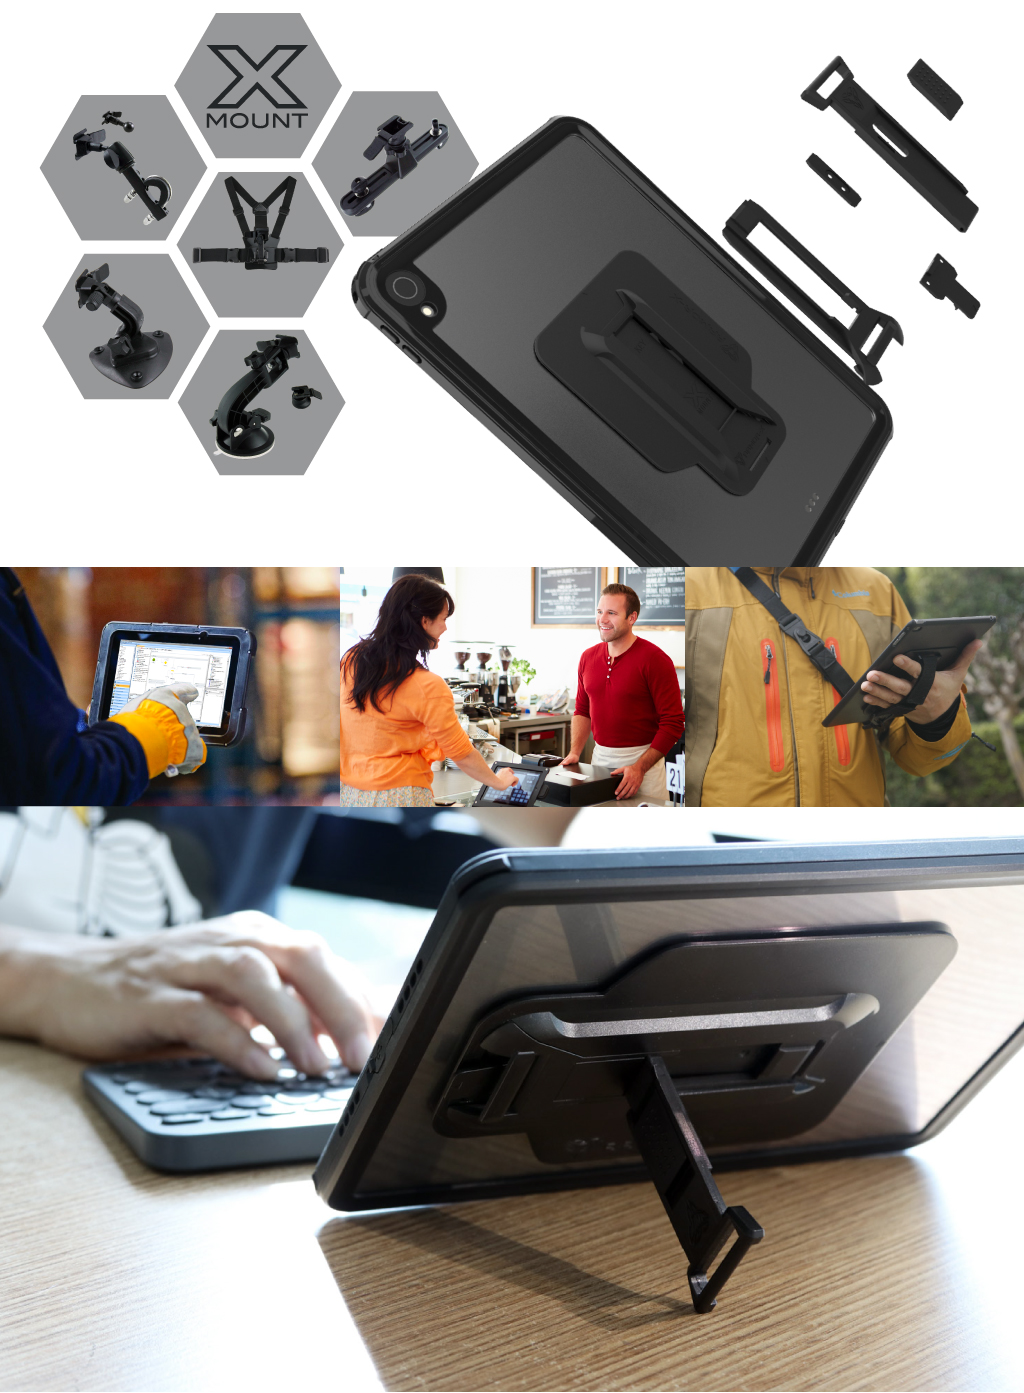 ARMOR-X iPad air 4 2020 case with kick stand. Hand free typing, drawing, netflux video watching